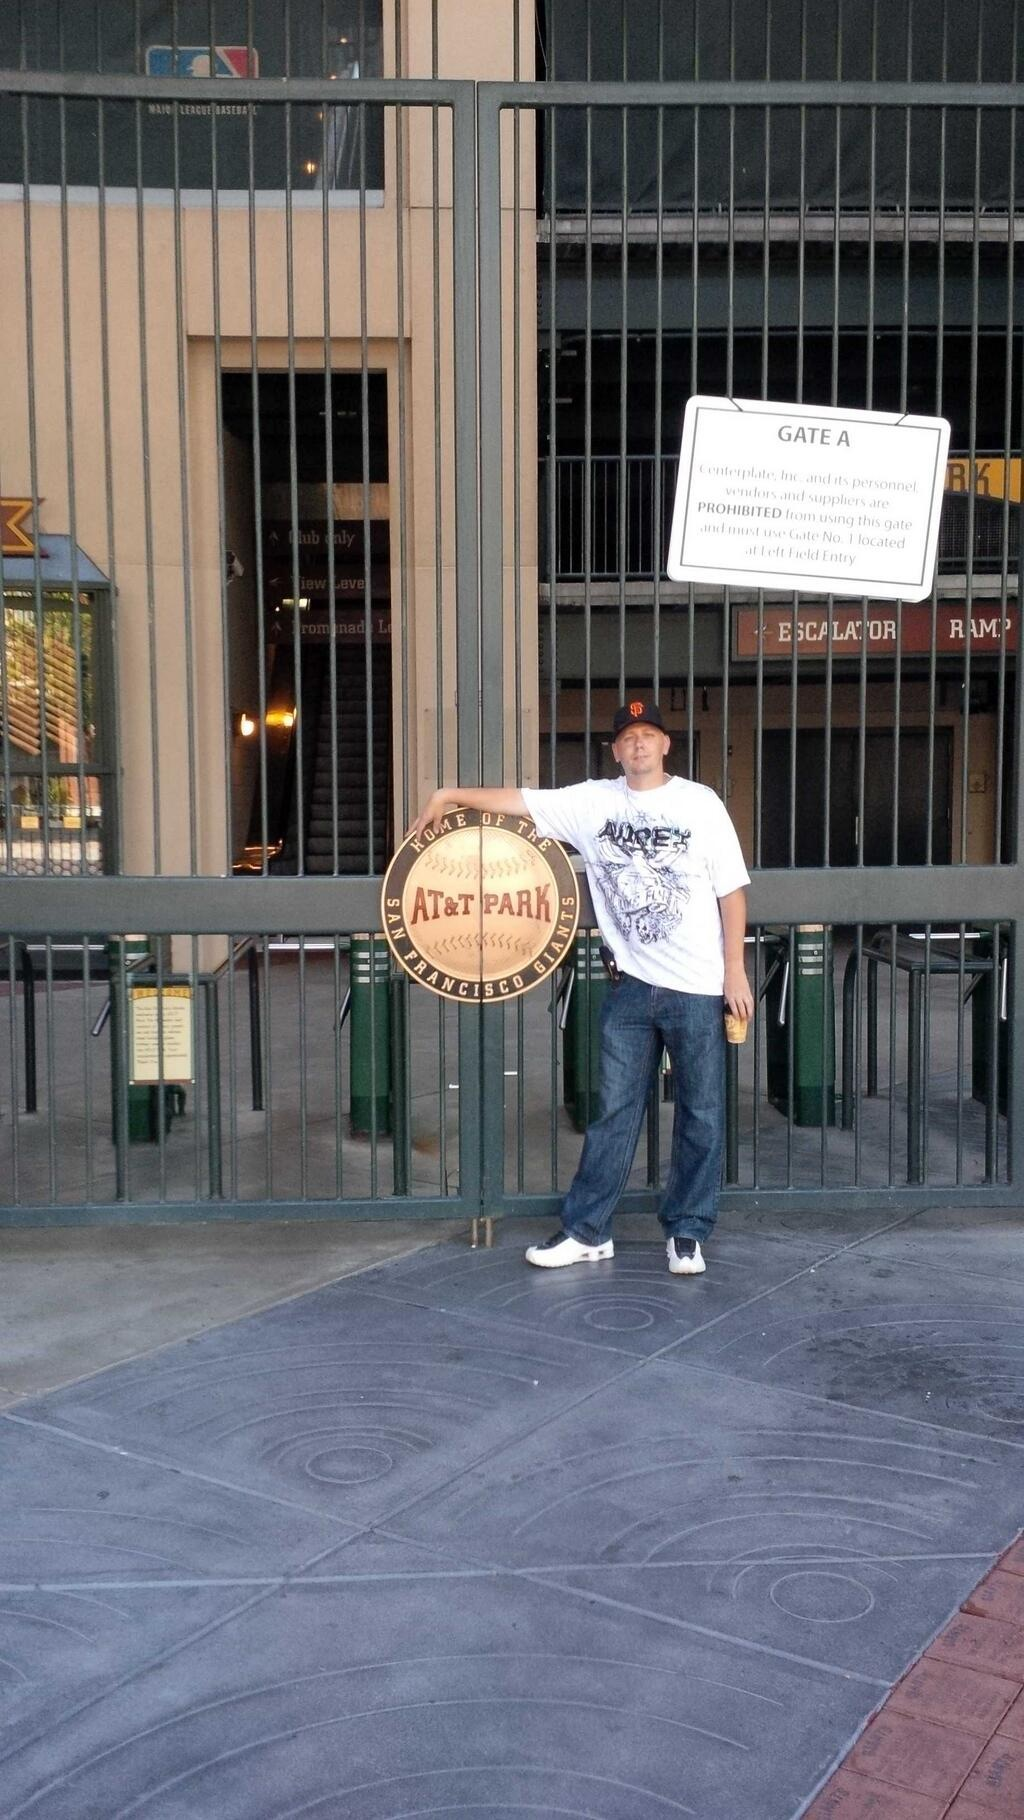 Standing at the Willie Mays entrance